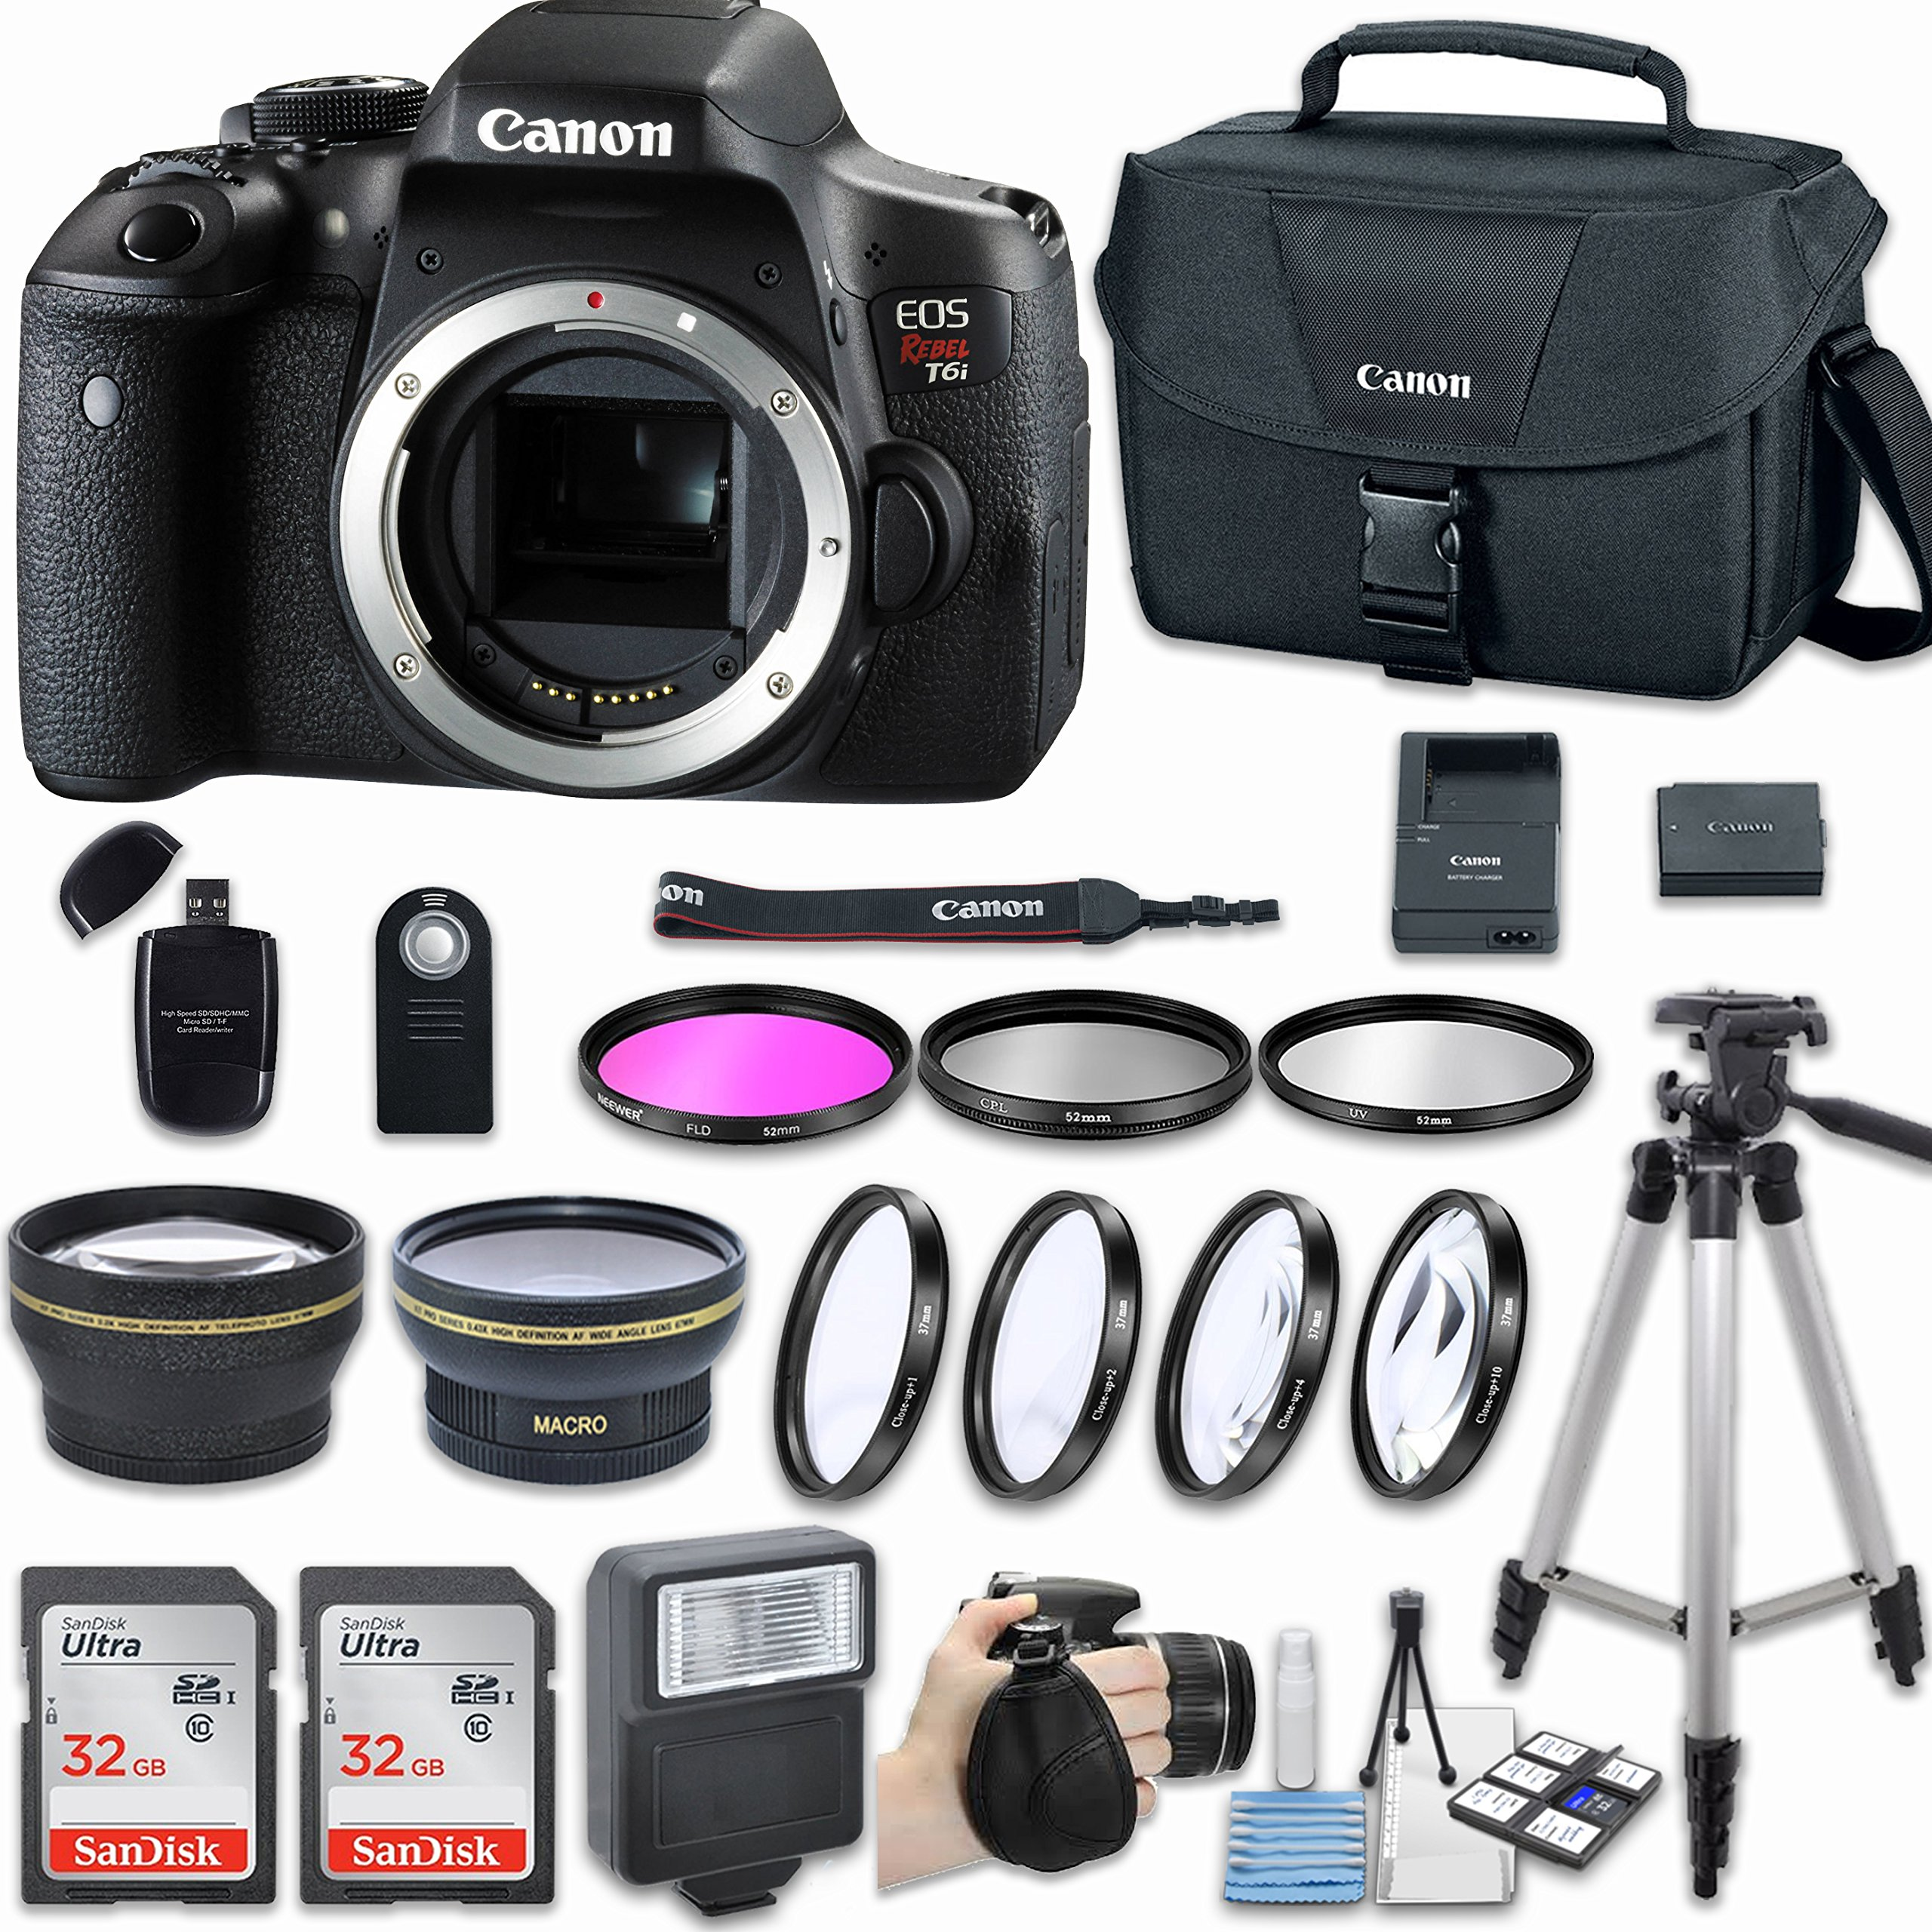 Canon EOS Rebel T6i DSLR Camera (Body Only) with Bundle - Includes 58mm HD Wide Angle Lens + 2.2x Telephoto + 2Pcs 32GB Sandisk SD Memory + Filter & Macro Kit & More Accessories by Canon